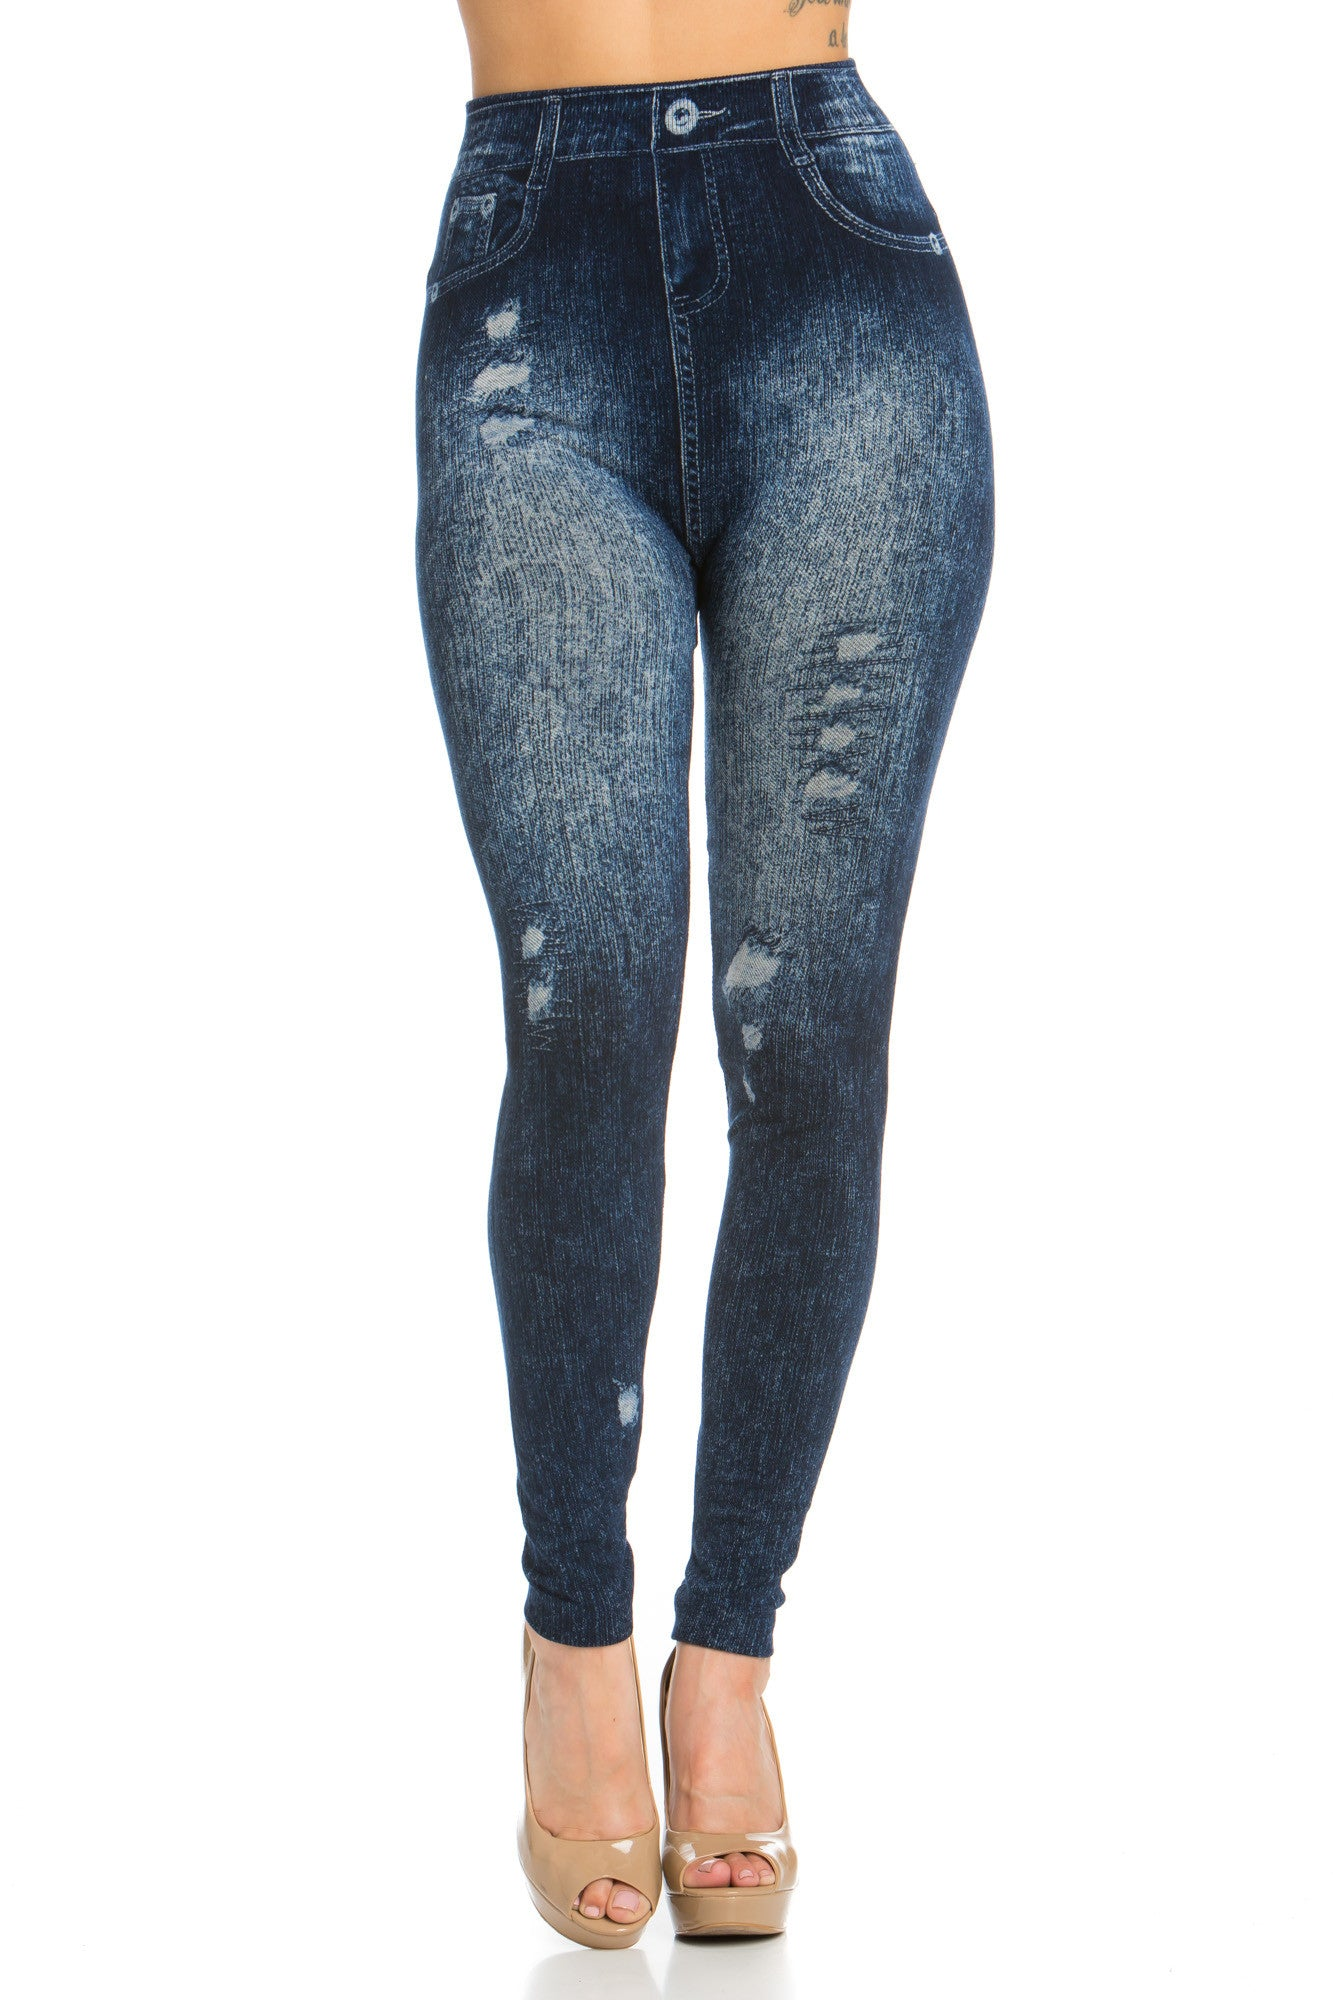 Denim Printed Leggings Seamless Jeggings BLUE